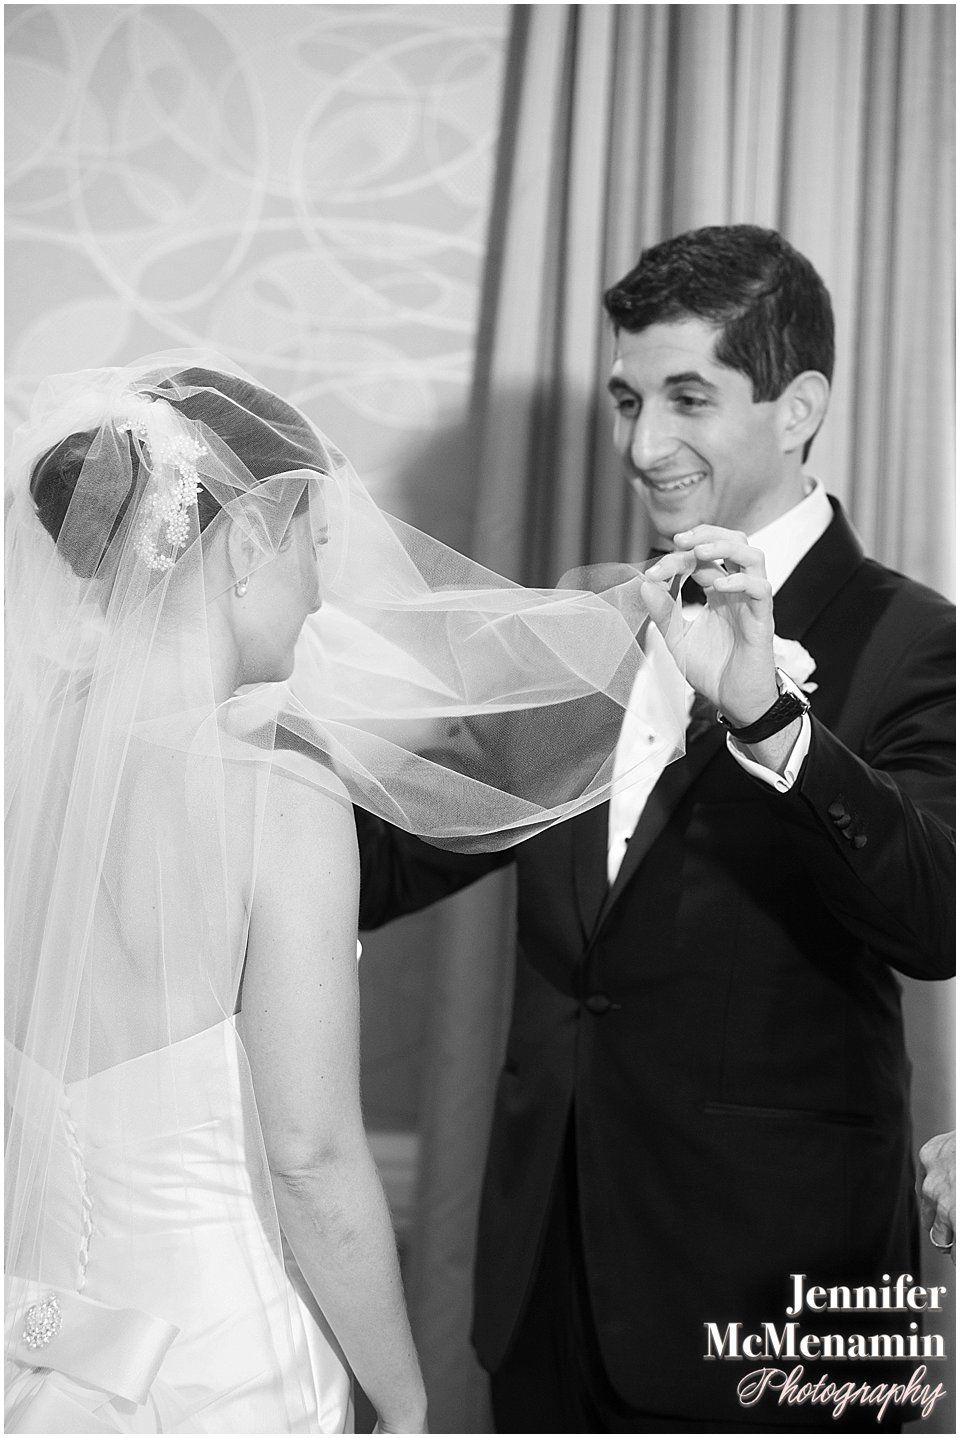 016-Jennifer-McMenamin-Photography-Baltimore-Waterfront-Marriott-wedding_0025